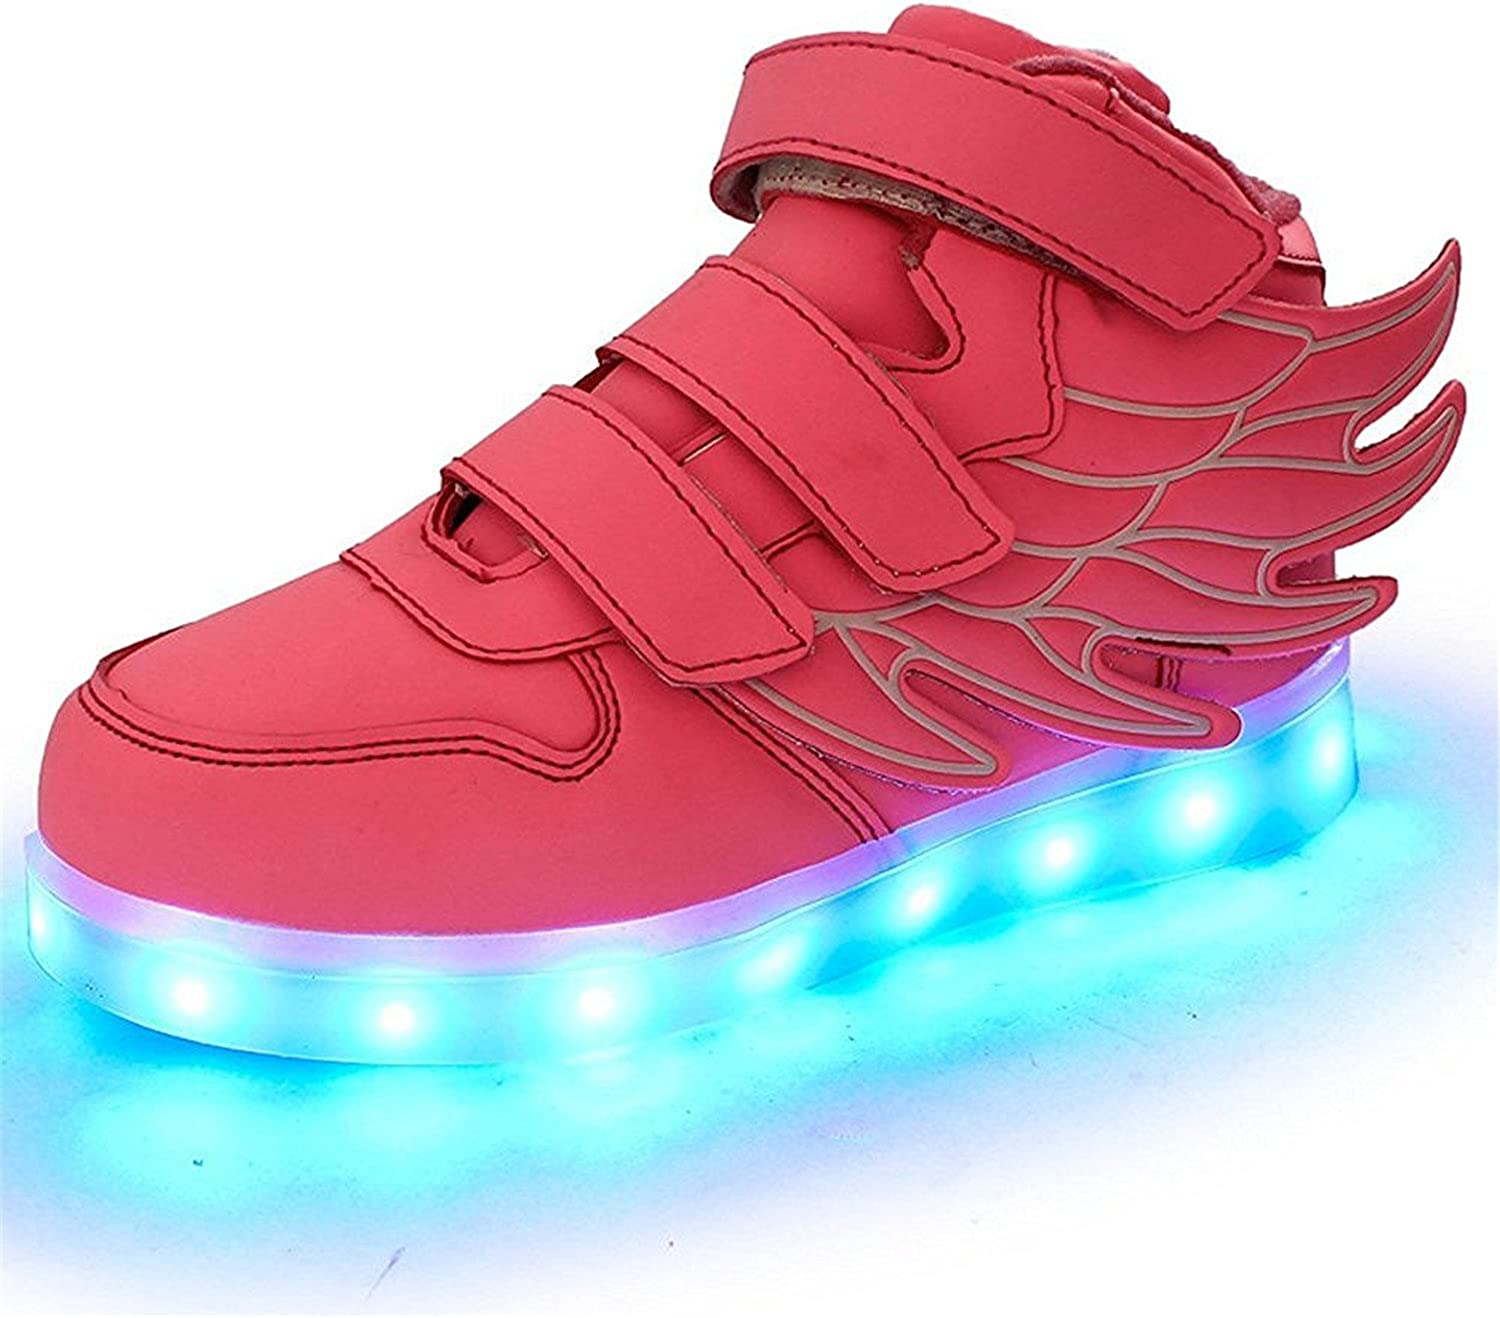 Also Easy Exquisite Boys Girls Upgraded USB Charging 7 colors LED Luminous Sneakers Breathable Light Up Flashing shoes